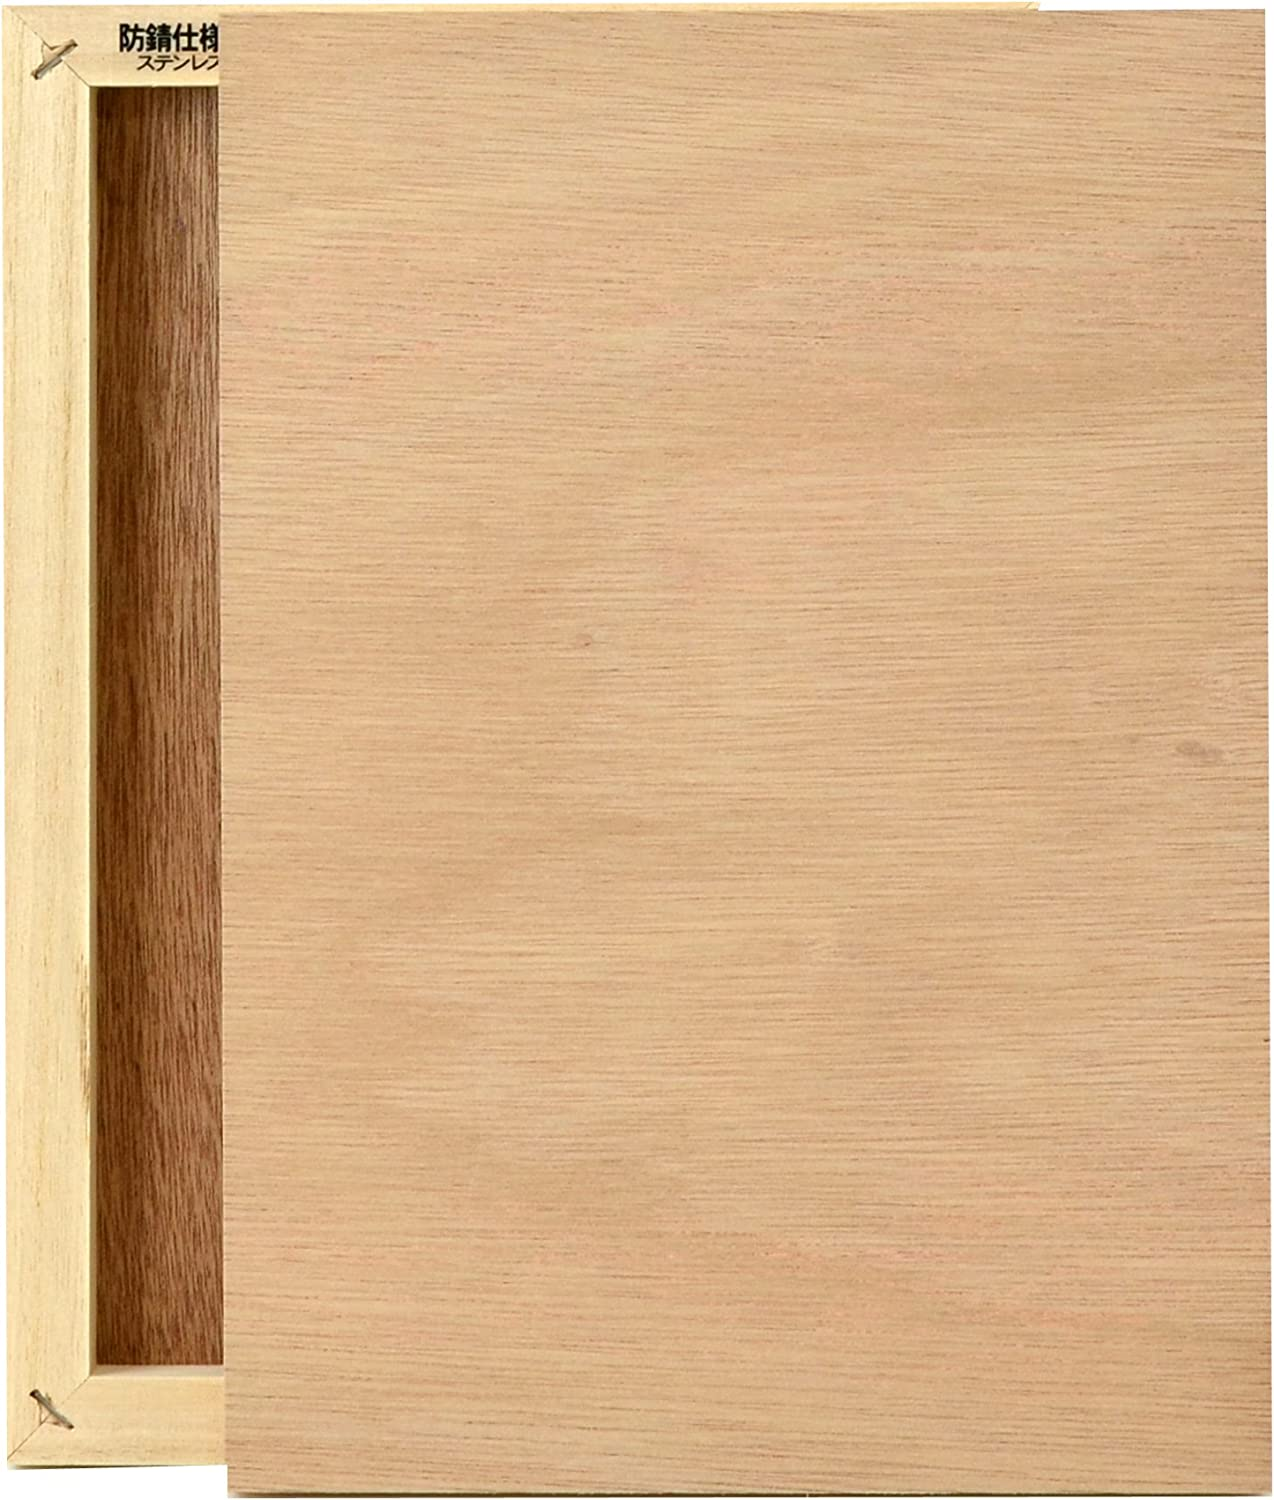 Aruteju Wooden Panel A4 2Pack 380319